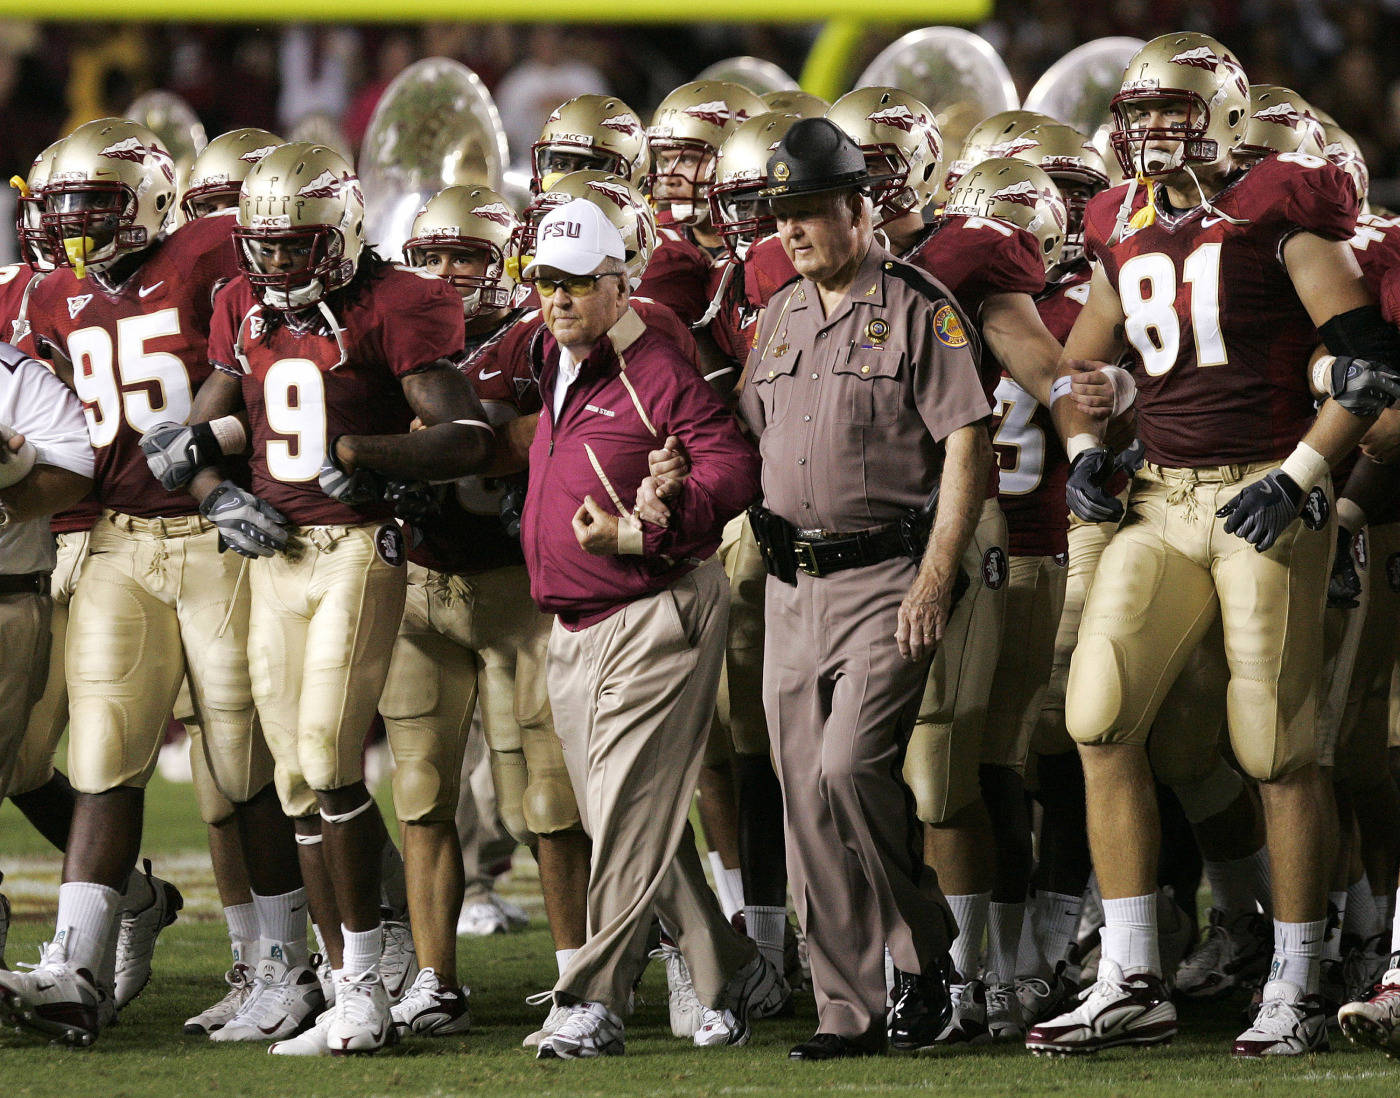 Florida State head coach Bobby Bowden, center, walks out with the team prior to the start of a NCAA football game against Georgia Tech on Saturday, Oct. 10, 2009, in Tallahassee, Fla.